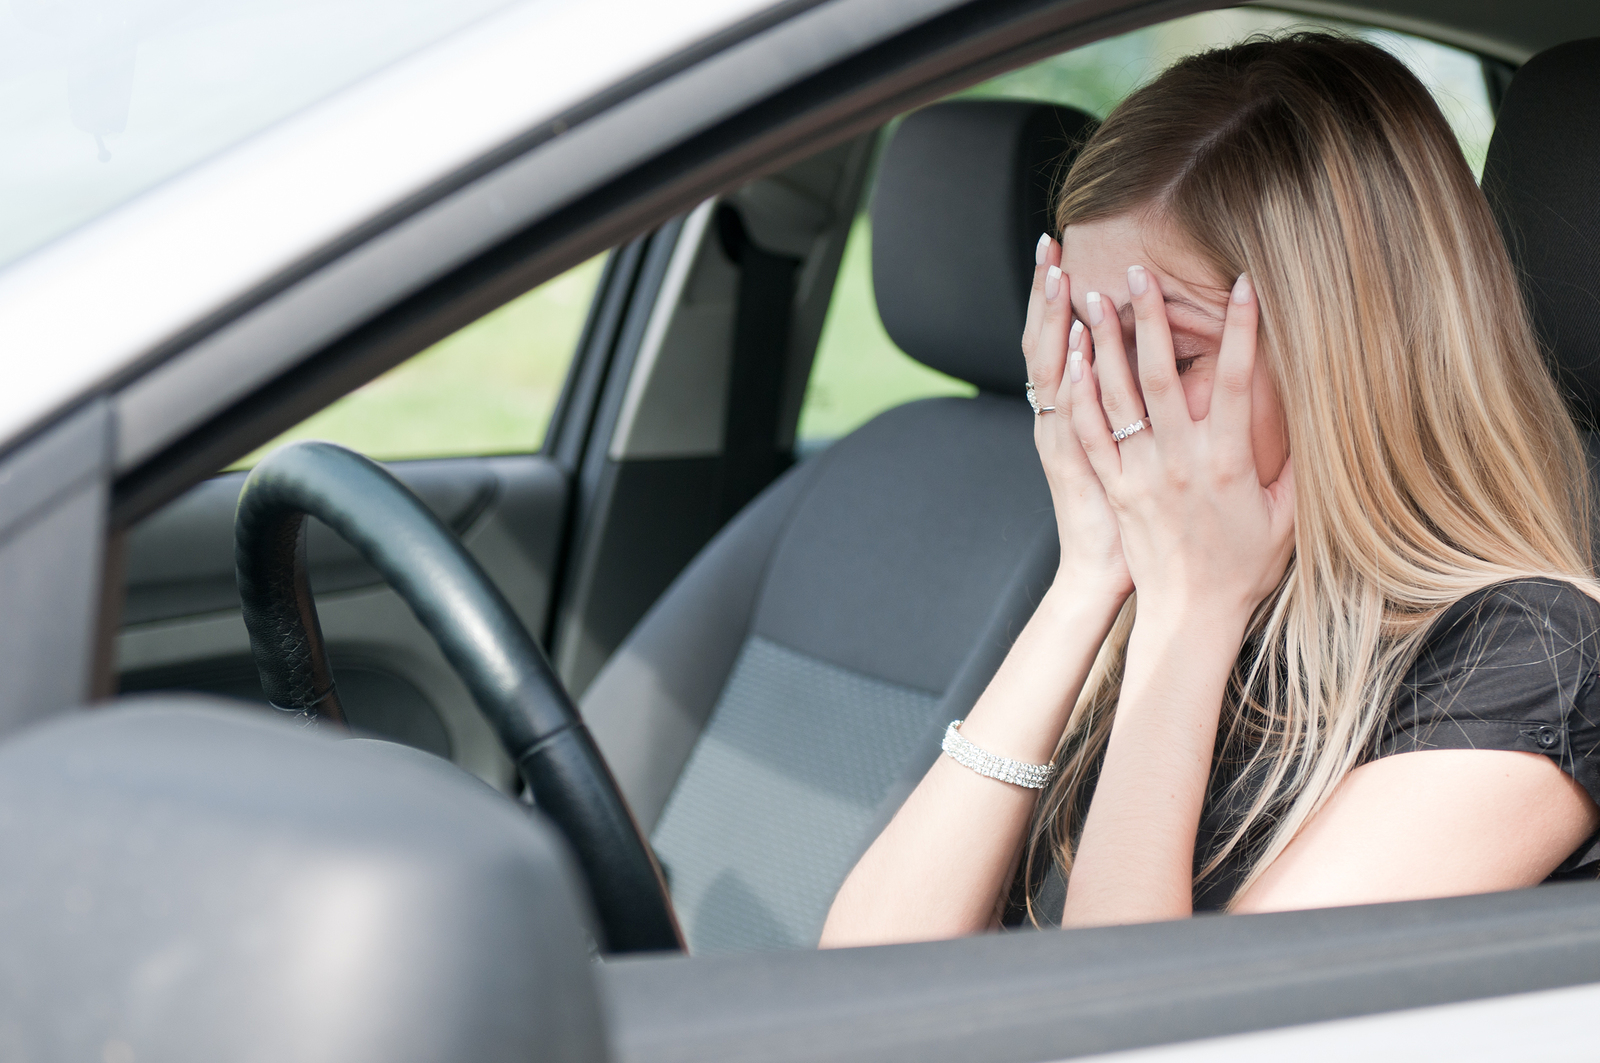 An Uninsured Motorist claim filed against the victim's insurance policy will help offset the medical expenses, vehicle repair, and lost wages incurred as a result of the accident. © BigStockPhoto